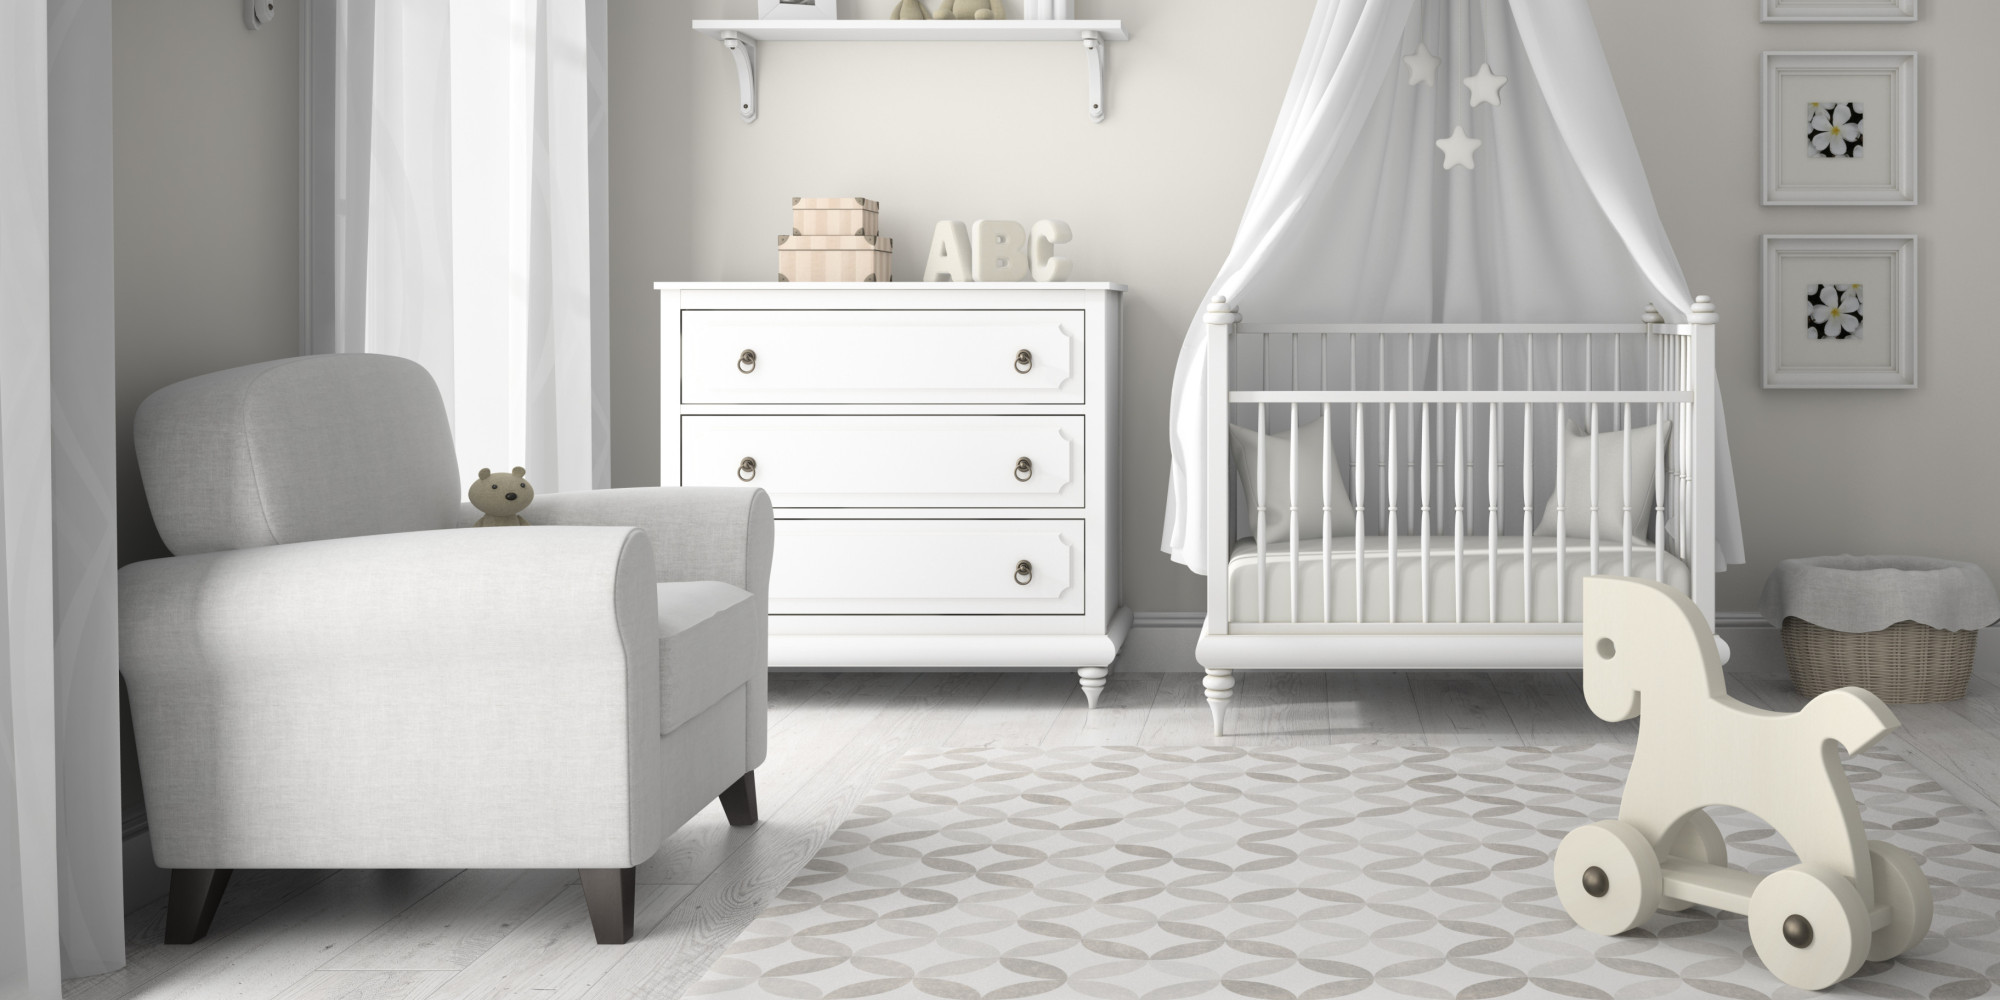 How To Decorate Your Baby's Nursery In A Day